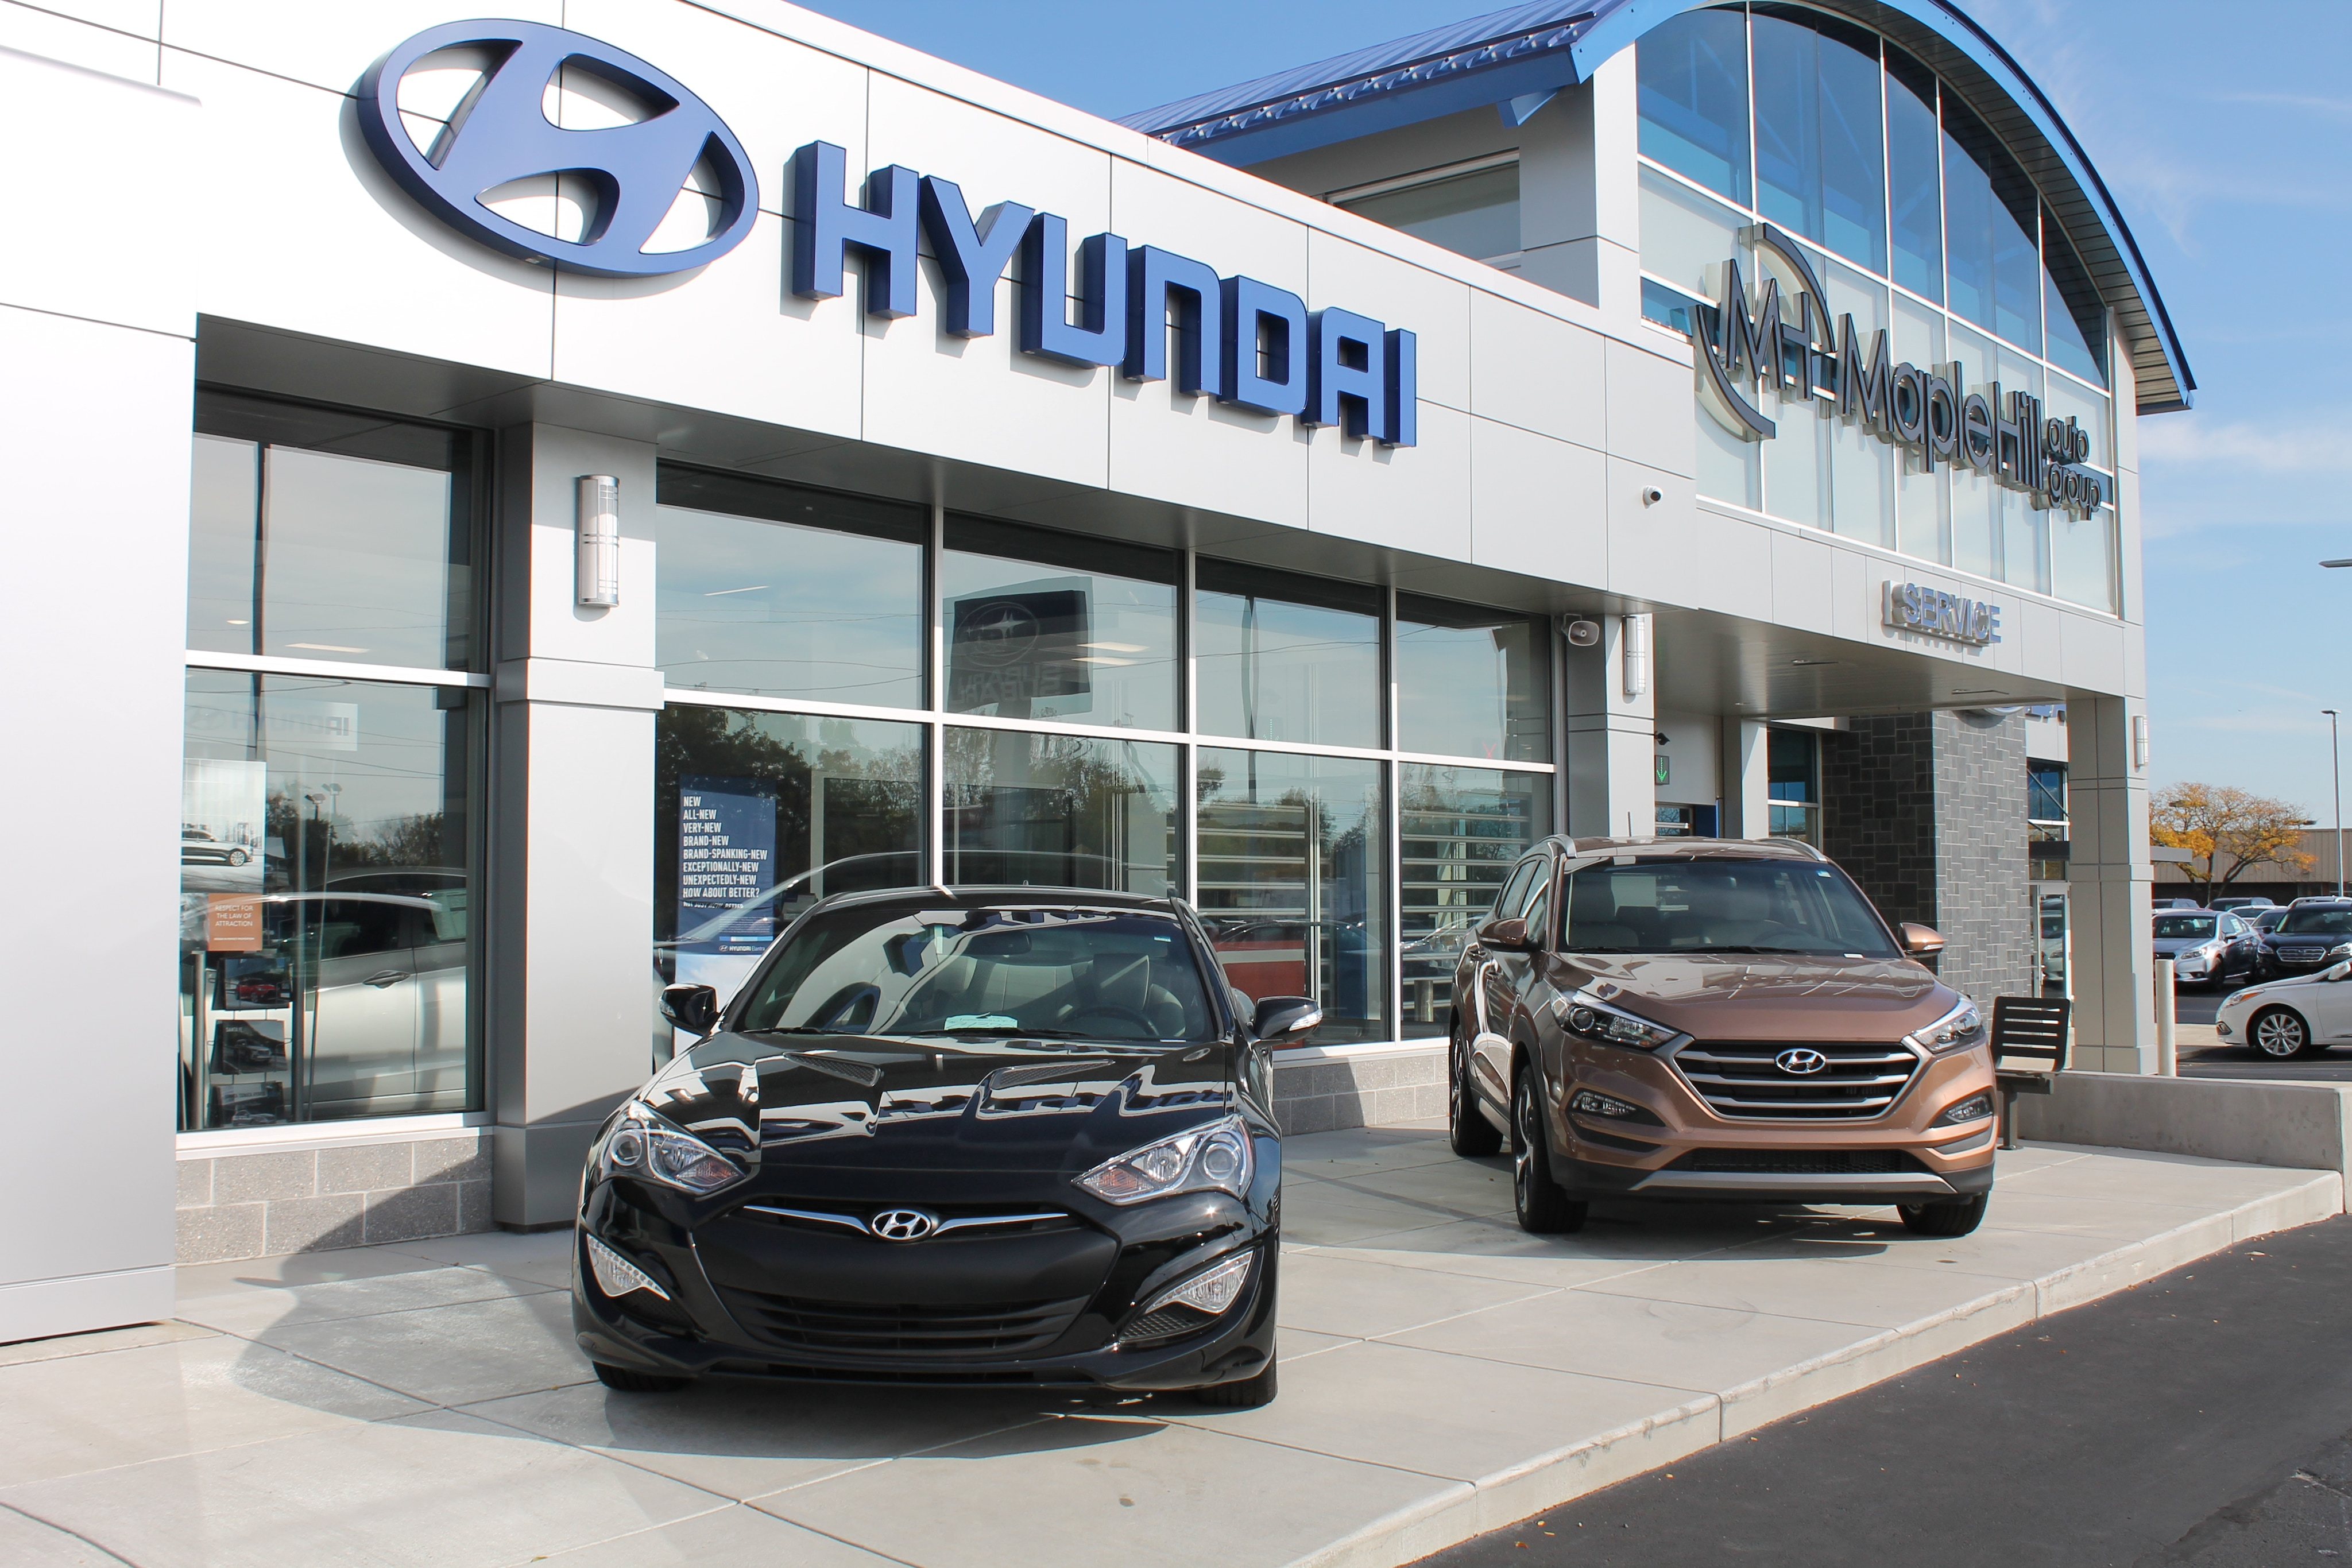 vehicles new bc nc used let works sale structure for s img dealers and vernon that you hyundai cars in a trucks deal